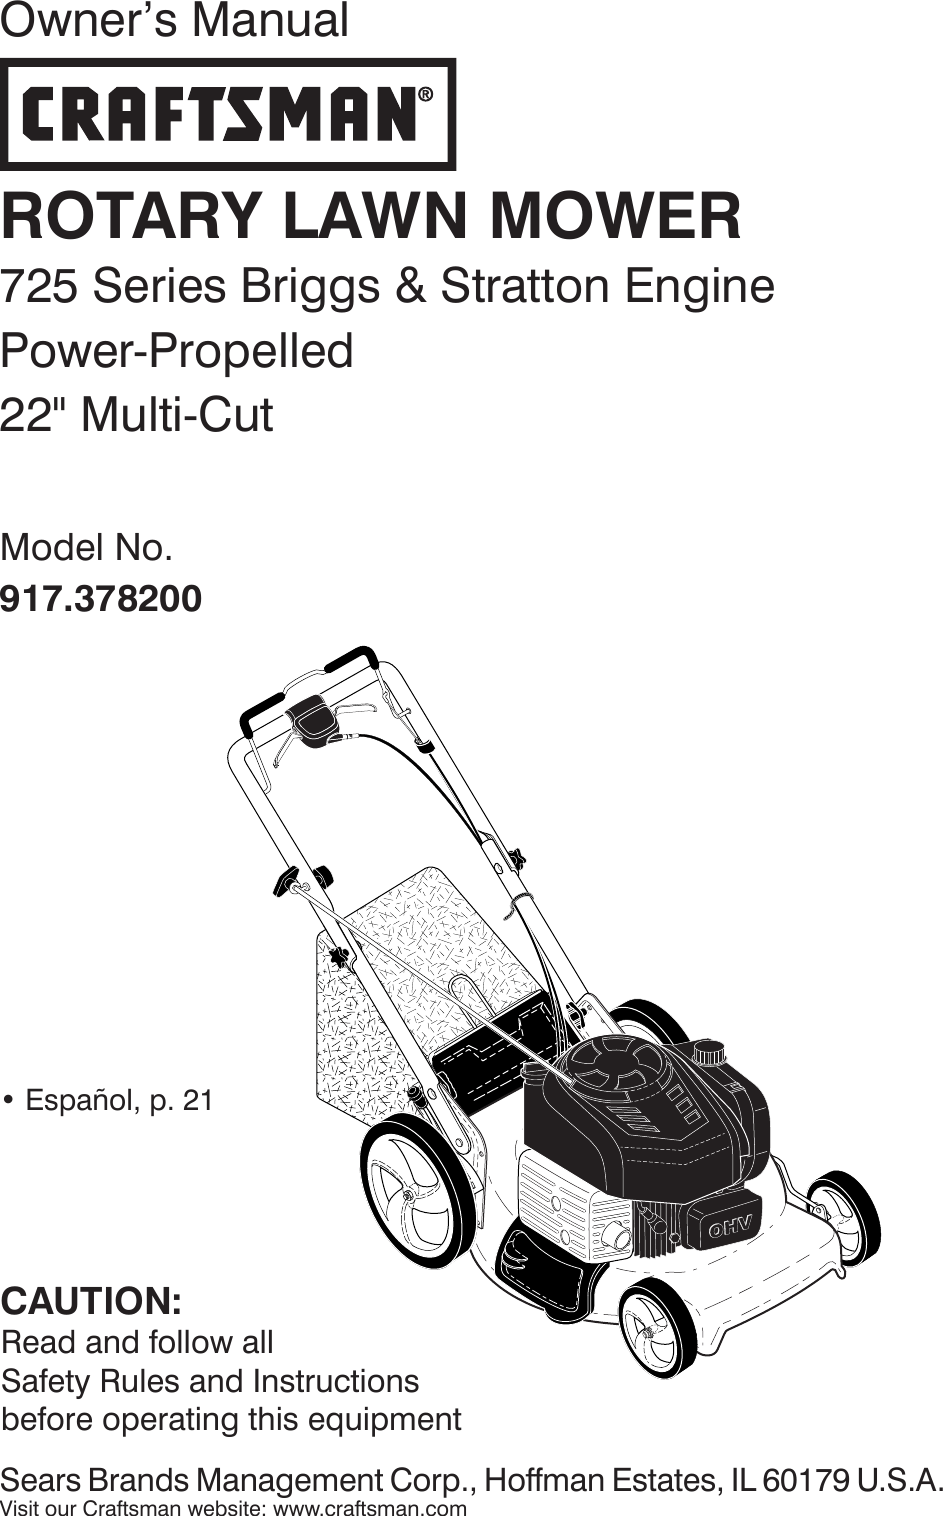 Craftsman 917378200 378200 es 589804003_r1 User Manual